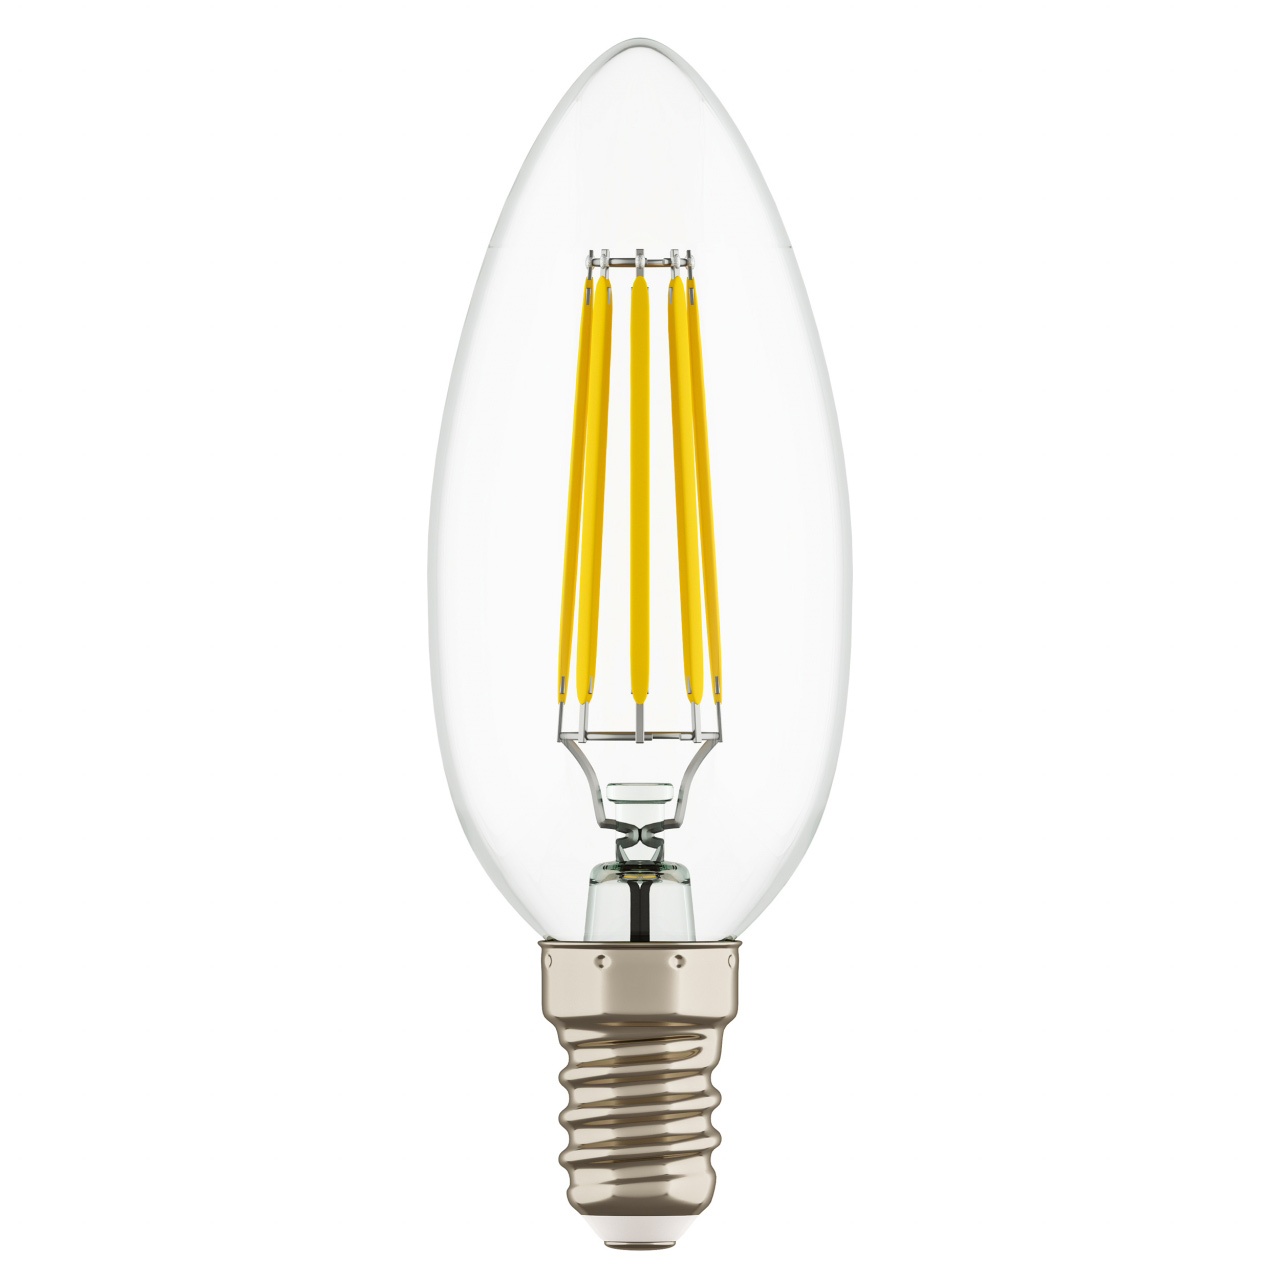 Лампа LED Filament 220V C35 E14 6W=65W 400-430LM 360G CL 4000K 30000H Lightstar 933504